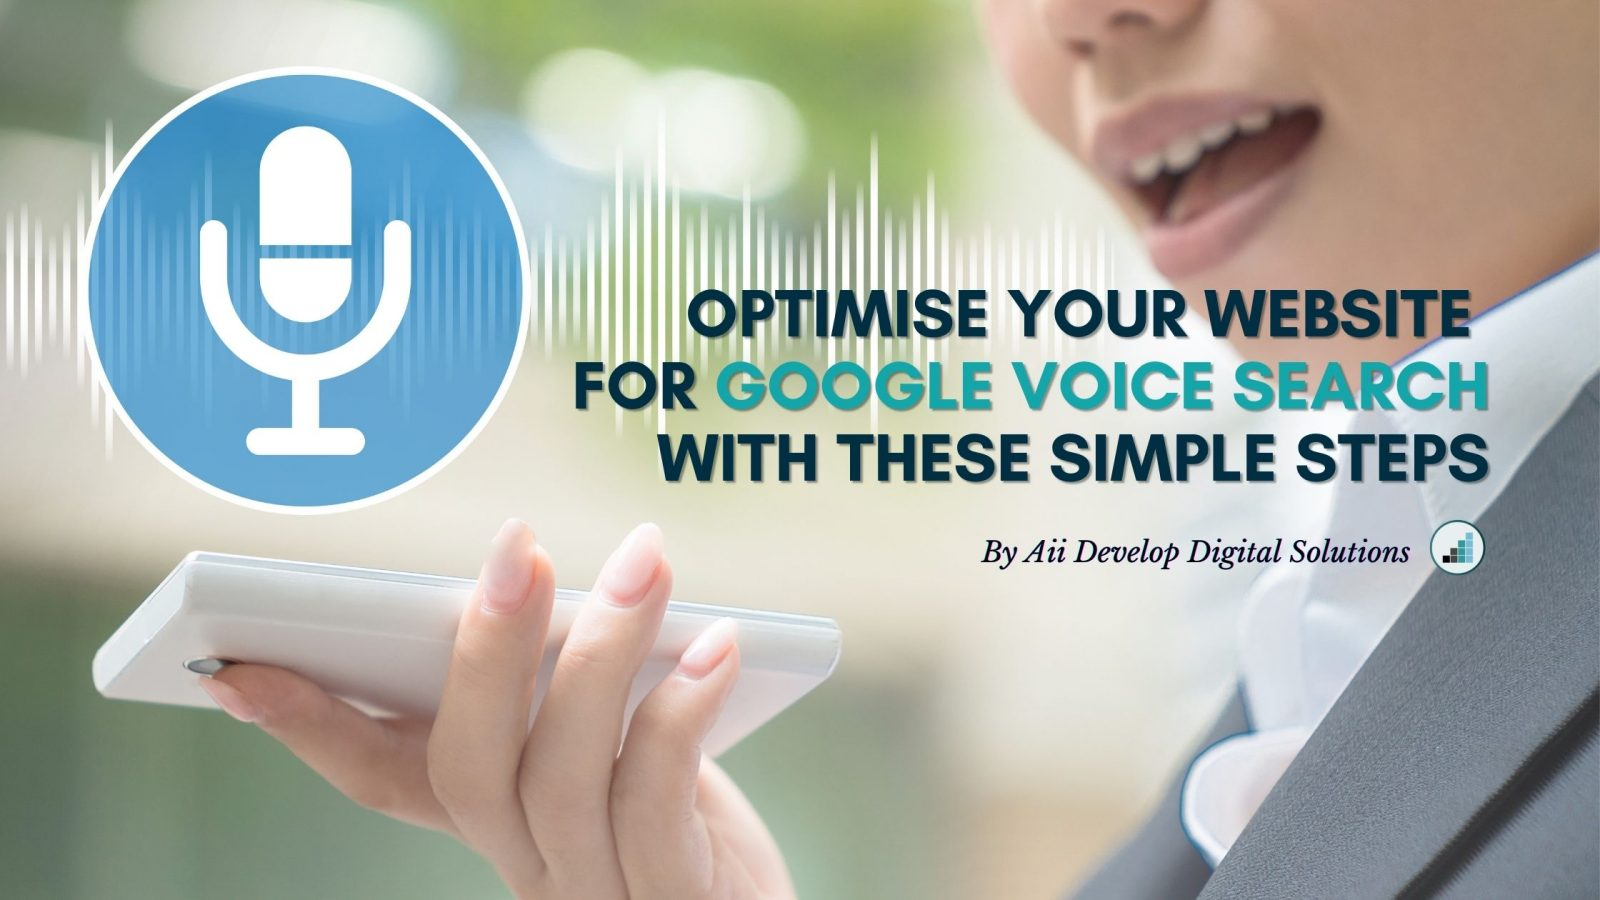 Optimize Your Website For Google Voice Search With These Simple Steps